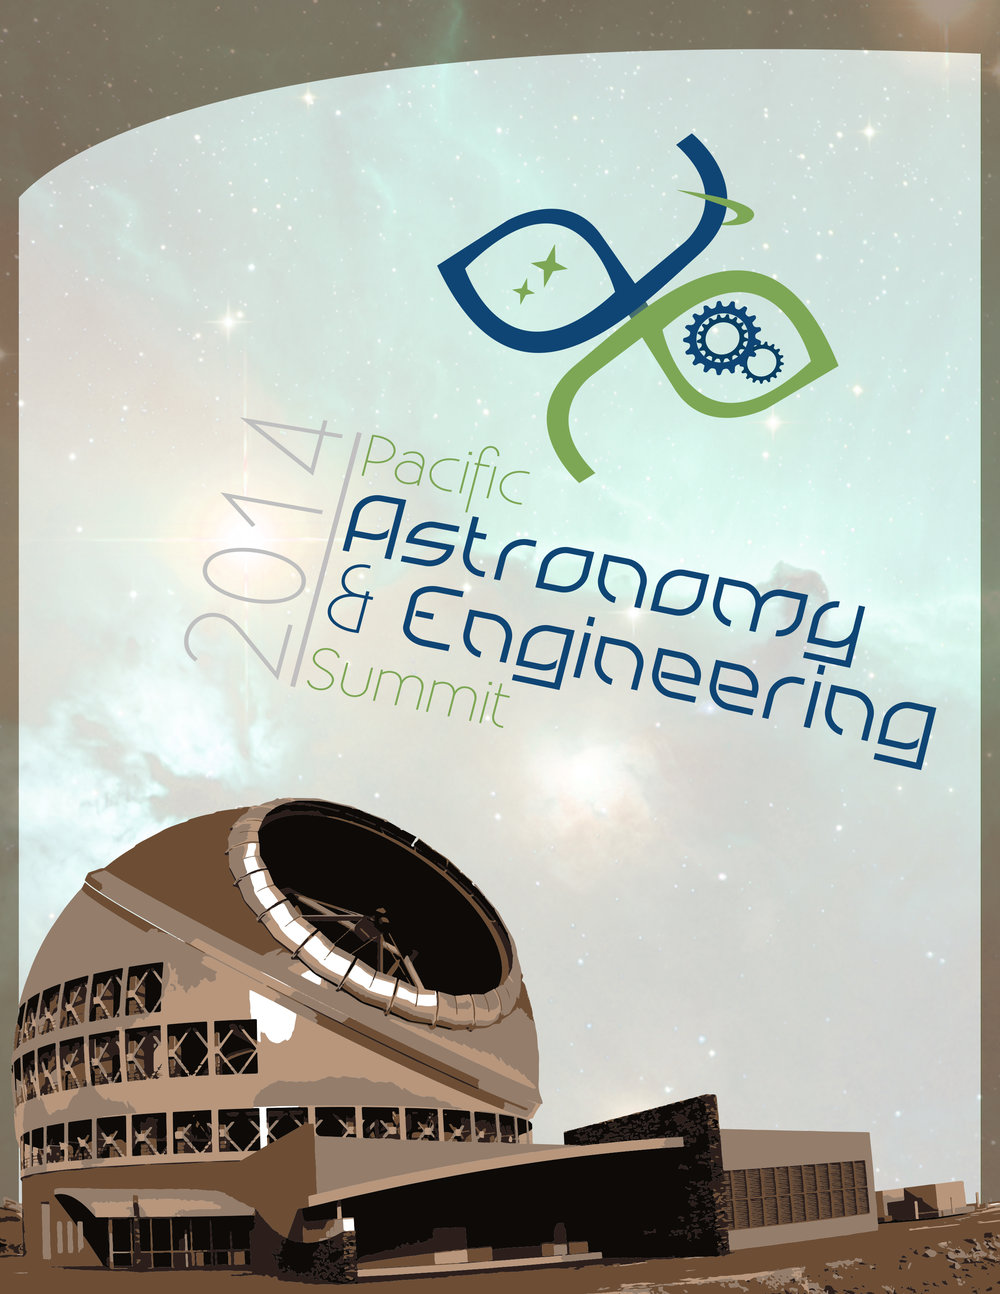 Pacific Astronomy & Engineering Summit 2014 Workbook Cover